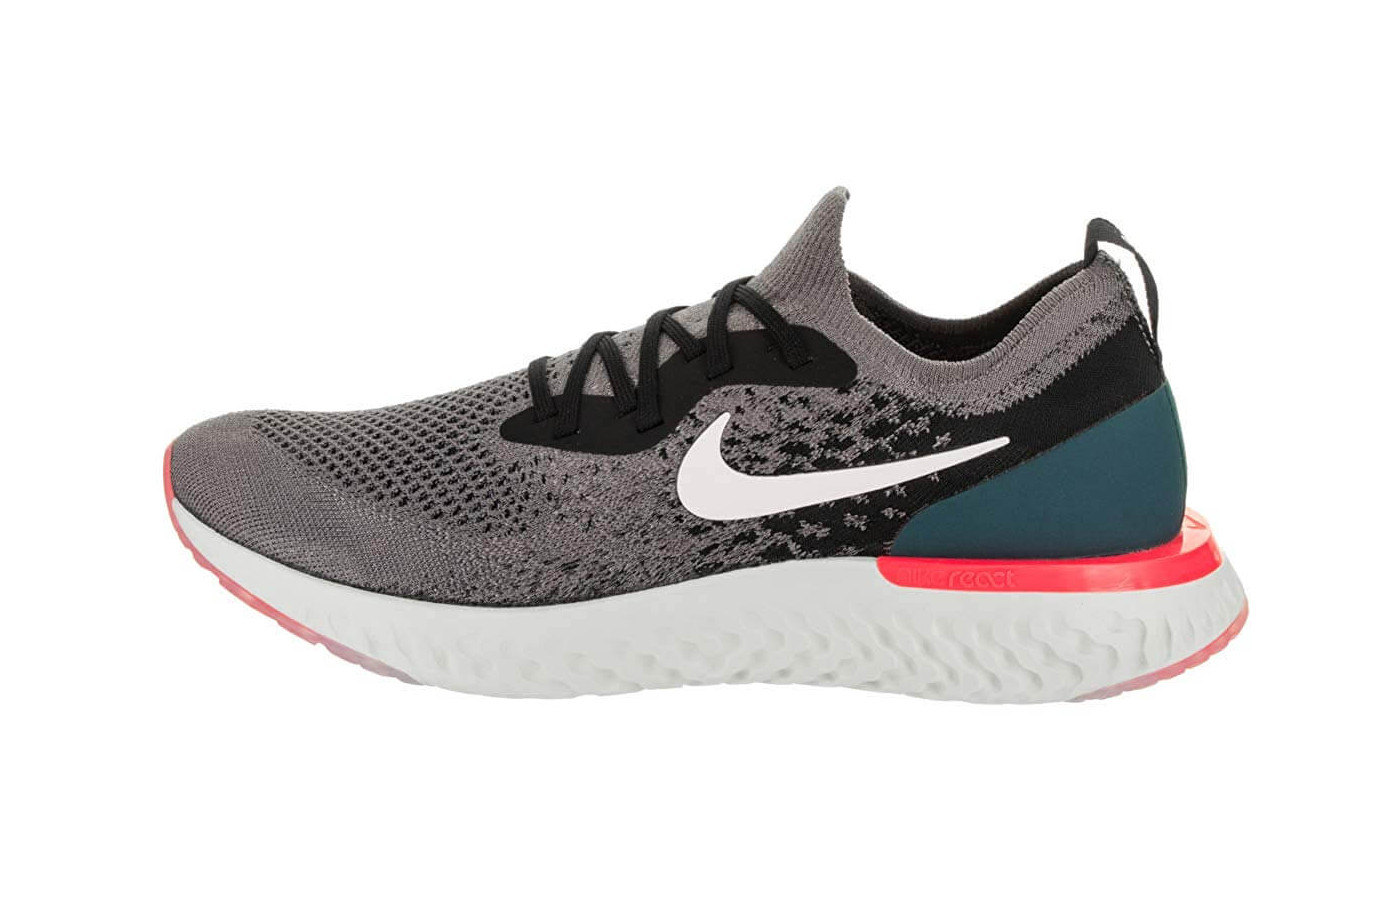 e82167ae41a3 Nike Epic React Flyknit 2019 - Buy or Not in May 2019